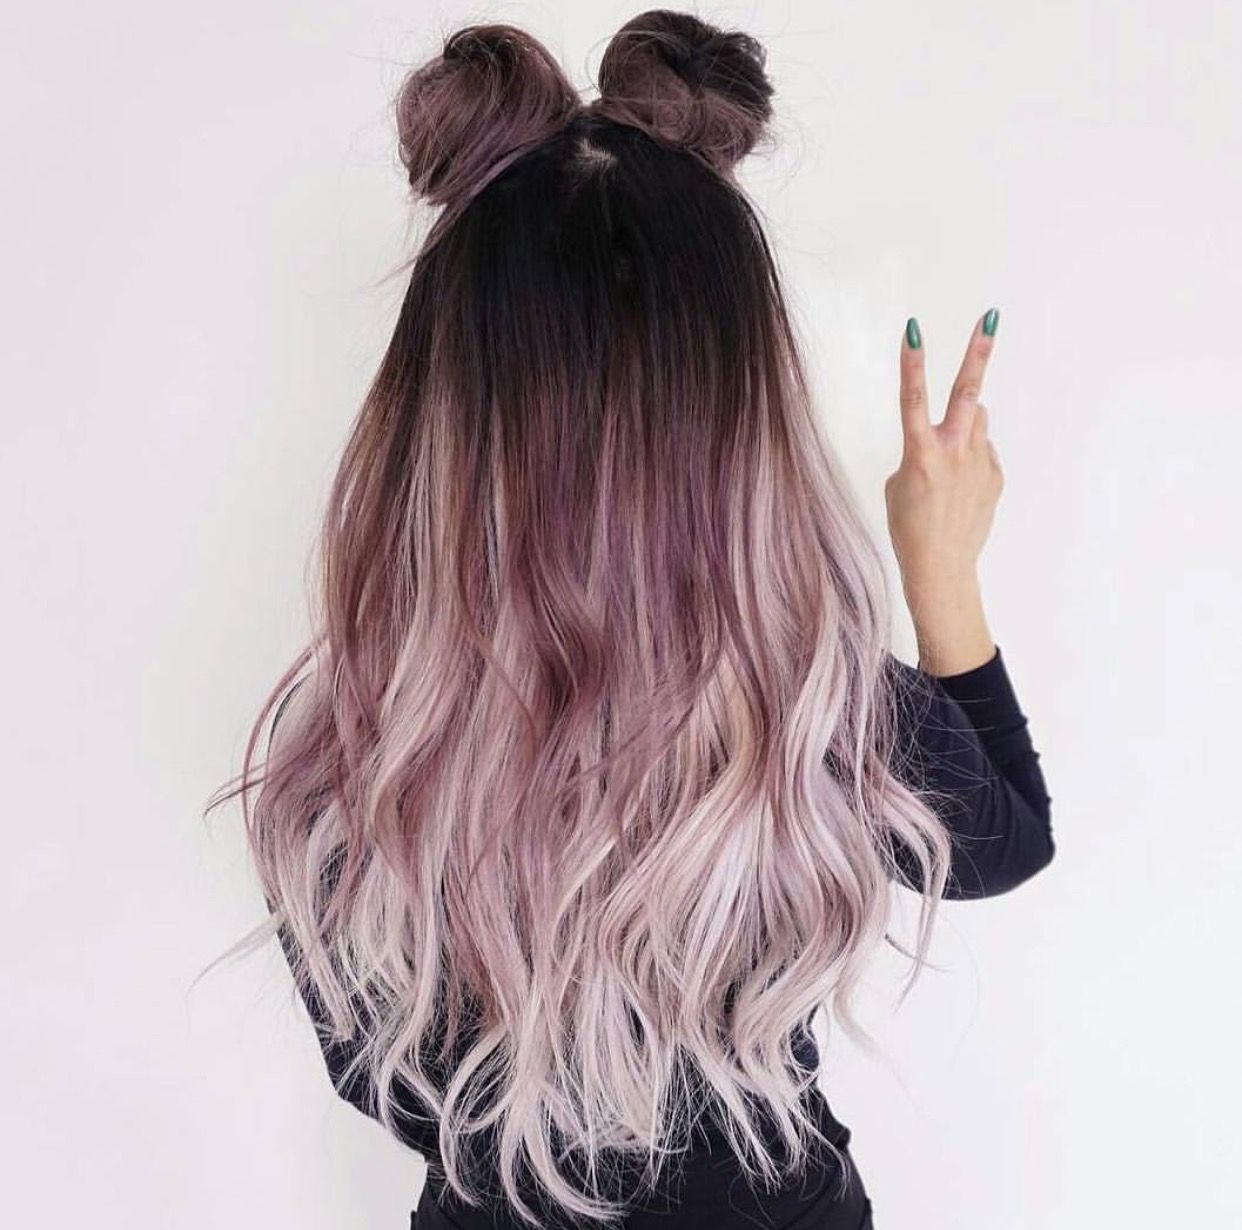 awesome rockin hairstyle and color